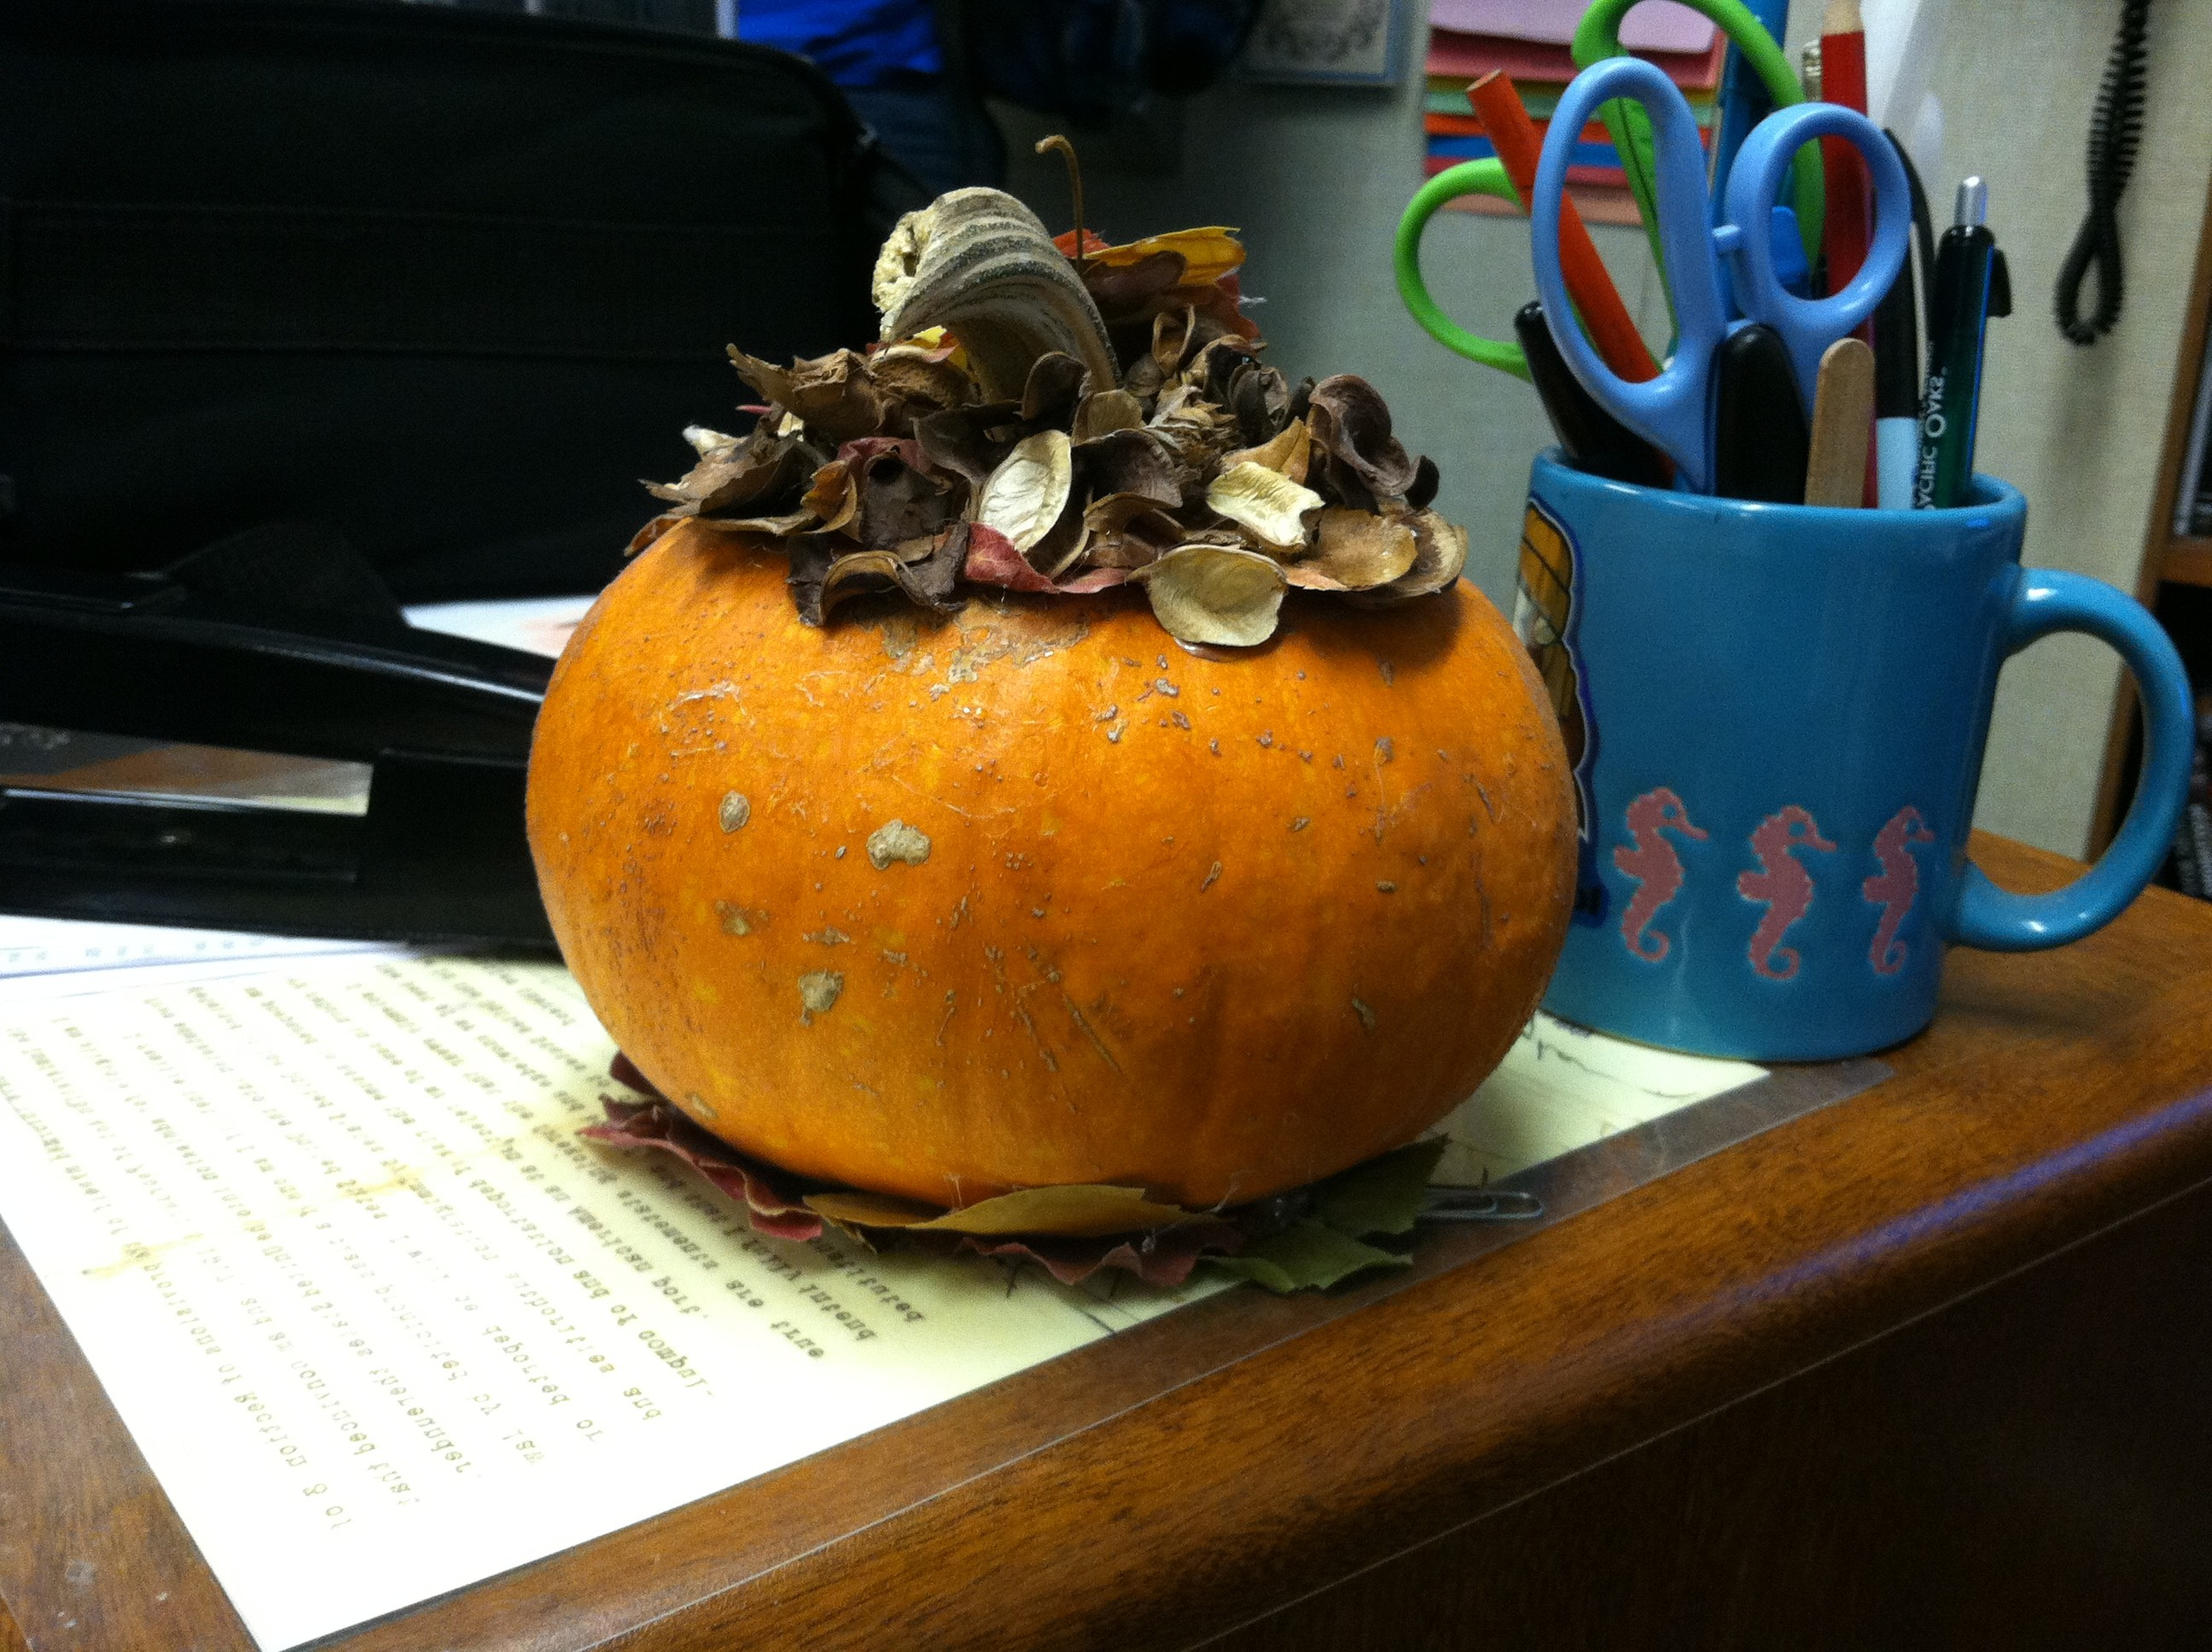 The pumpkin trend continues to grow as the weather becomes cooler. Social Studies teacher Kevin Williams has a pumpkin on a table in his classroom.